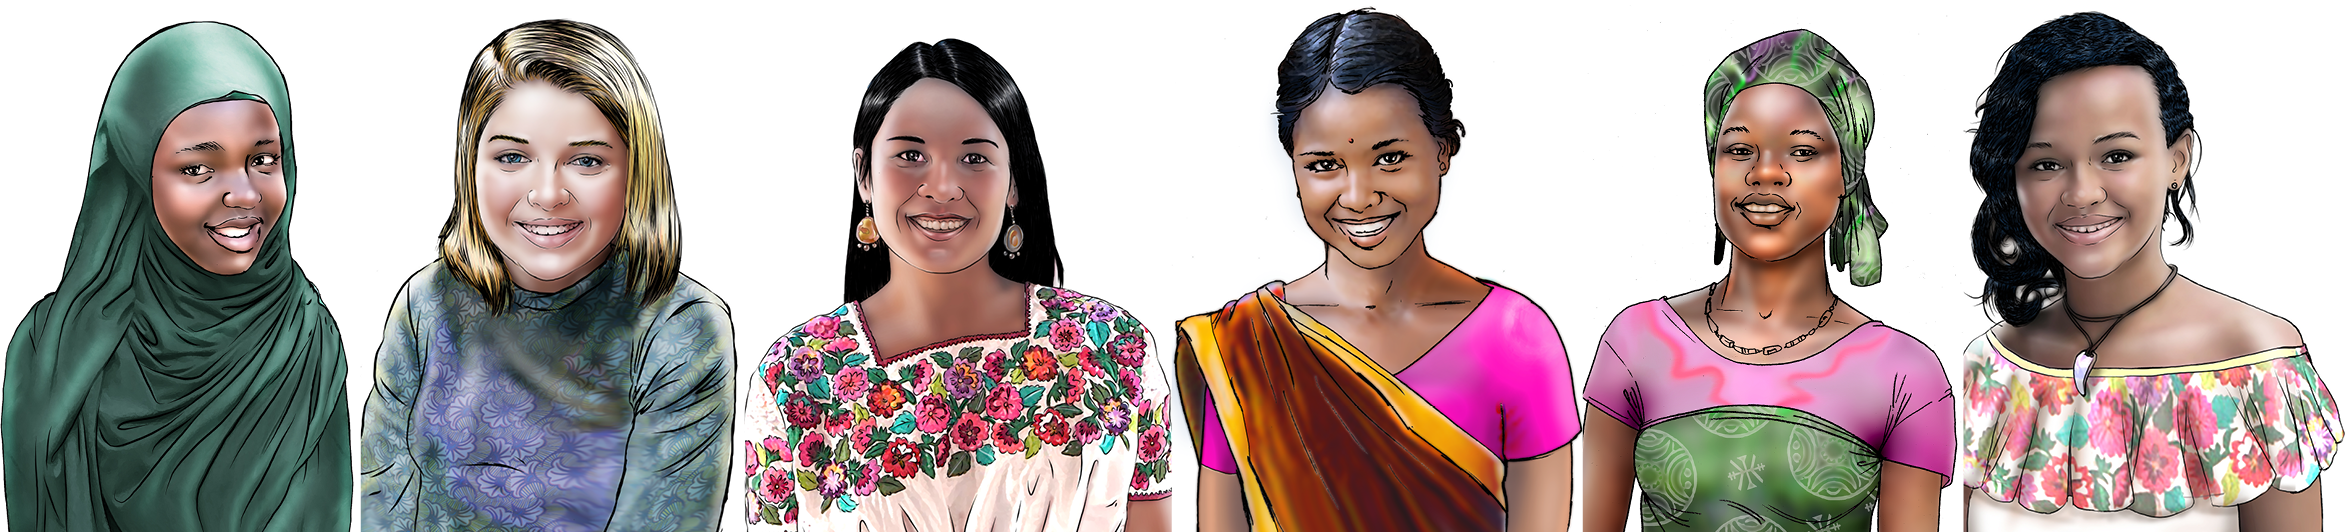 Illustration of smiling adolescent girls in a row.